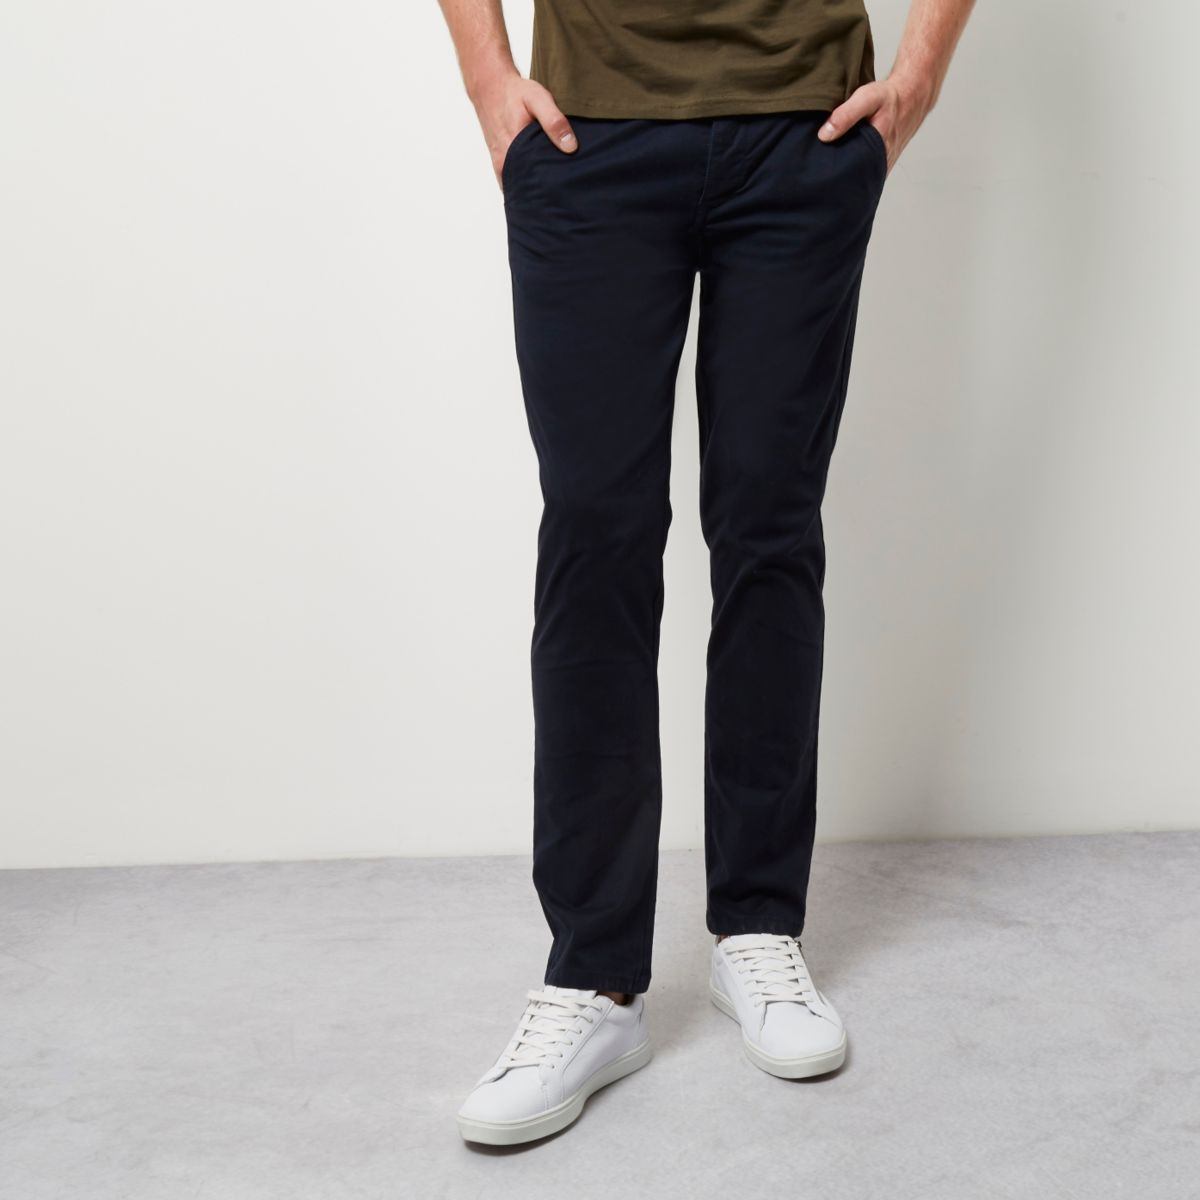 Mens Navy skinny chino trousers River Island